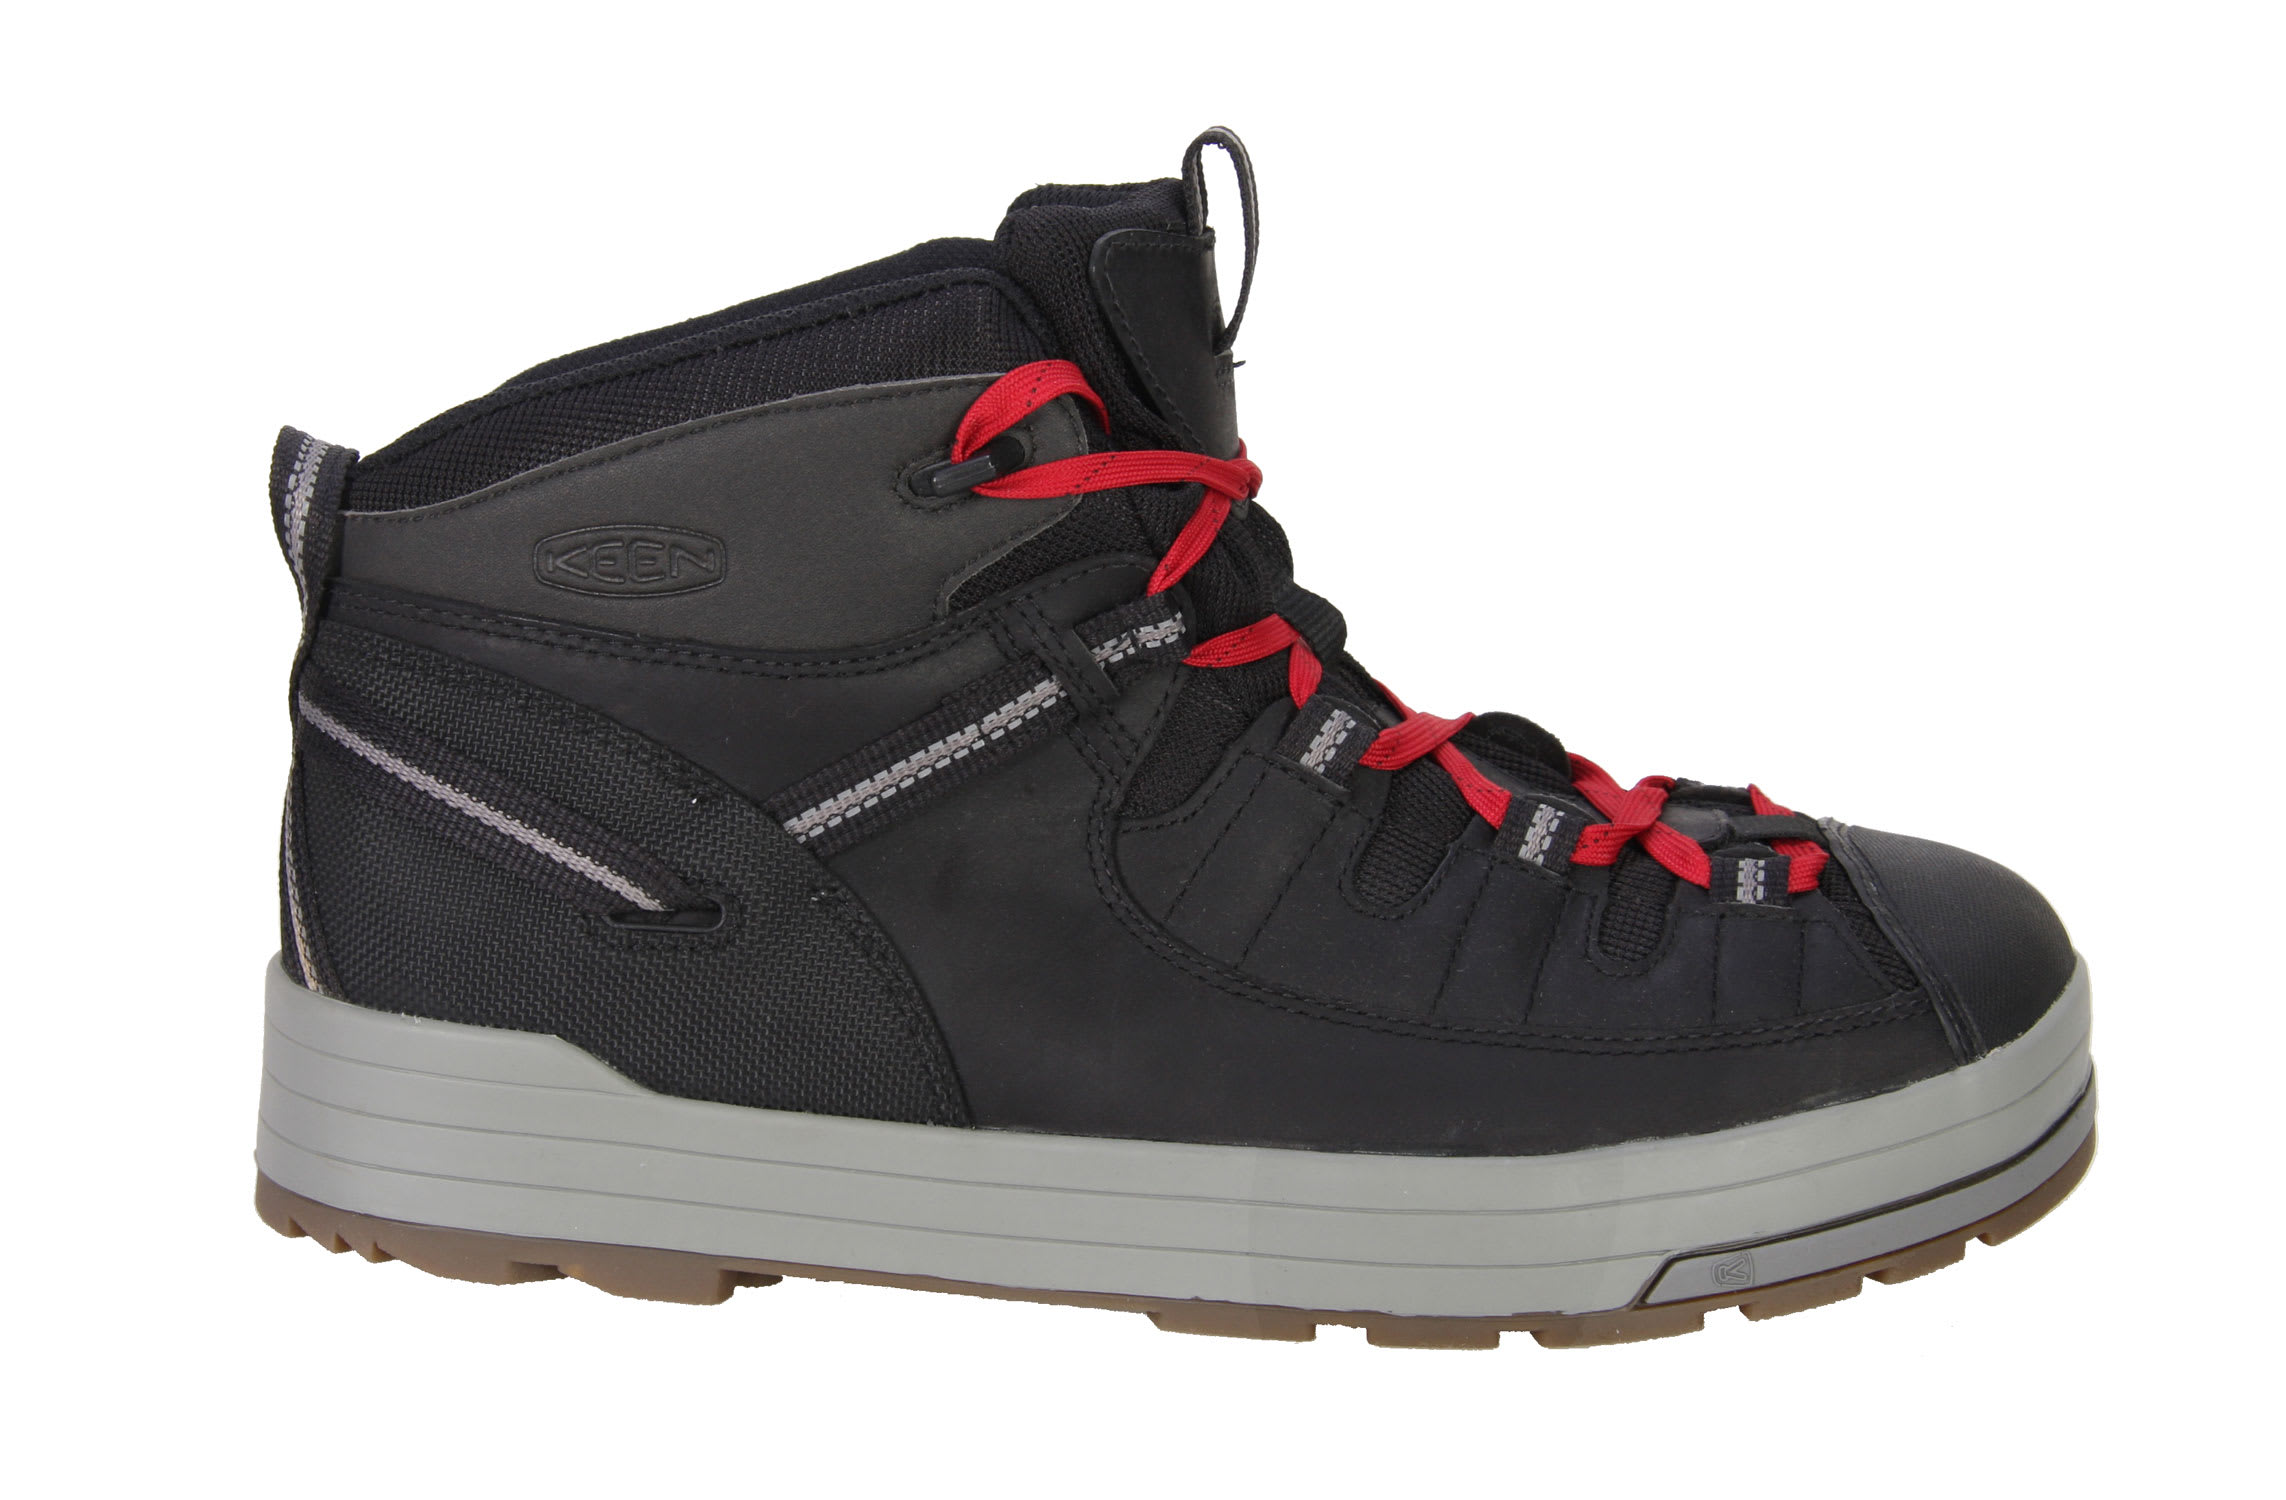 Shop for Keen The Dan Hiking Shoes Black Jester Red - Men's